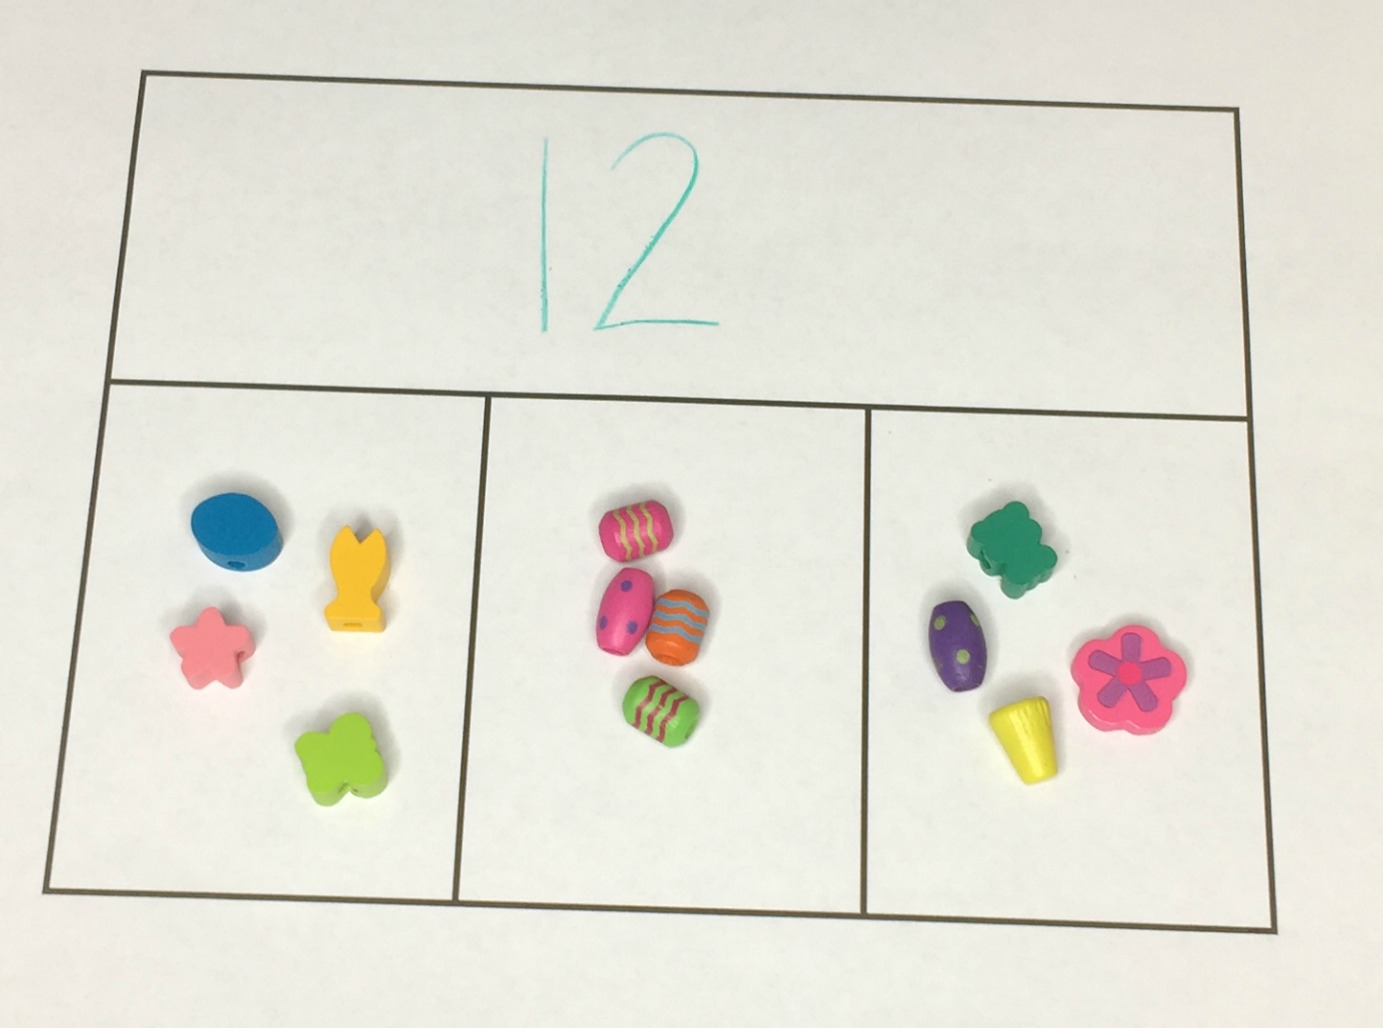 Tape diagrams can be used to show addition, subtraction, multiplication, and division.